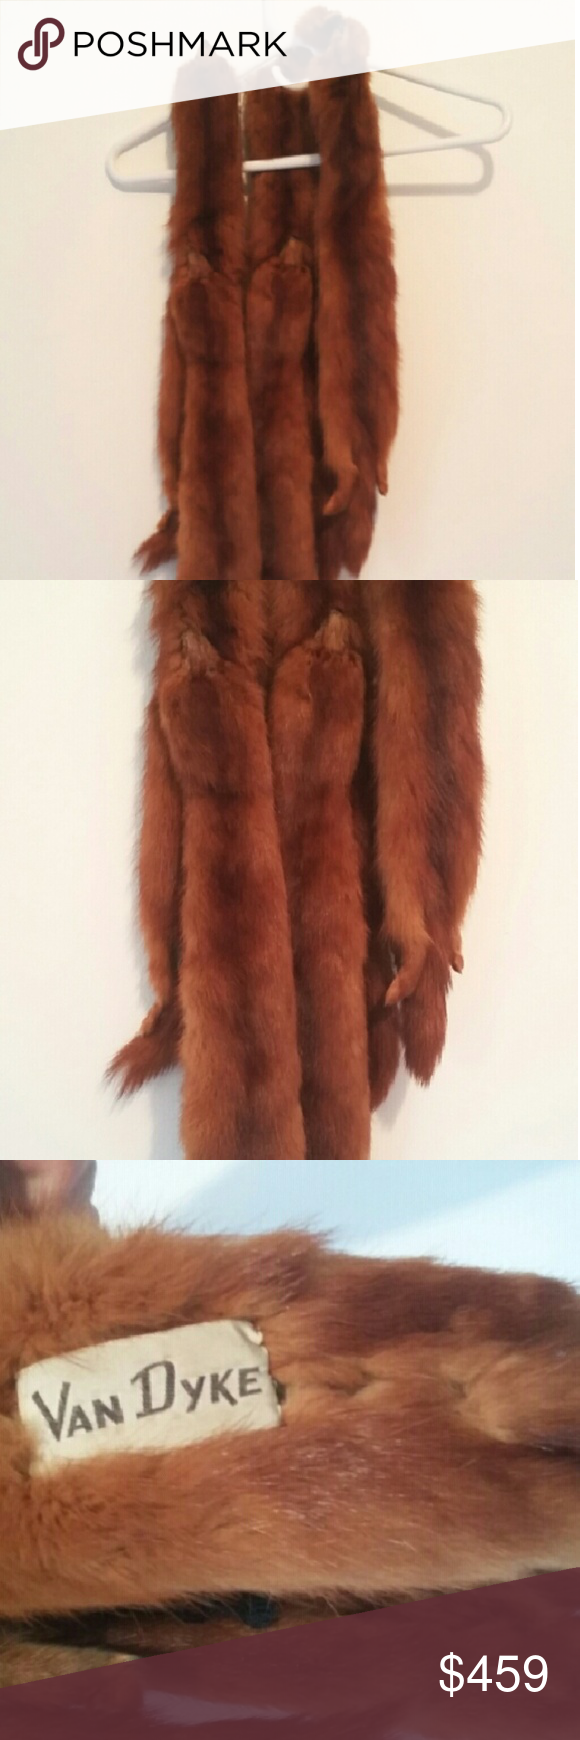 """Van Dyke Vintage Genuine Red Fox Furr (6 Foxes) Amazing Condition! Luxurious """"Van Dyke"""" Vintage Genuine Red Fox Furr (6 Foxes). The foxes are fully intact, full red foxes. Including the head, tail and entire body. Super thick, super rare. I personally have a big problem with posting this piece as I do not believe in the barbaric manner these animals are killed so some rich lady can show off to others that her man spends more time at his office than with her. But this is a favor for and…"""